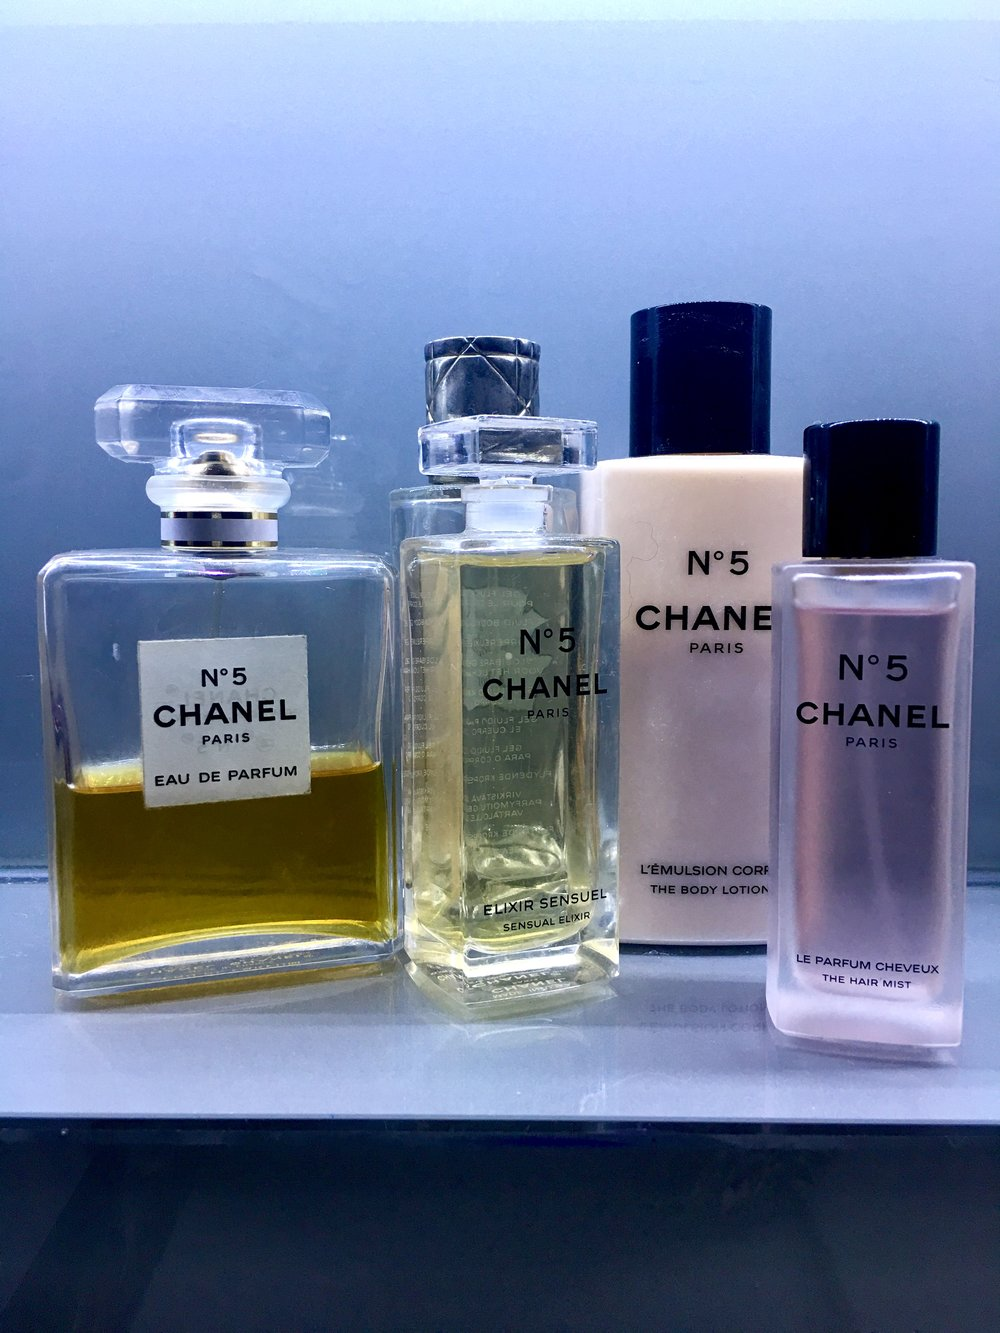 Chanel is her classic go-to scent.